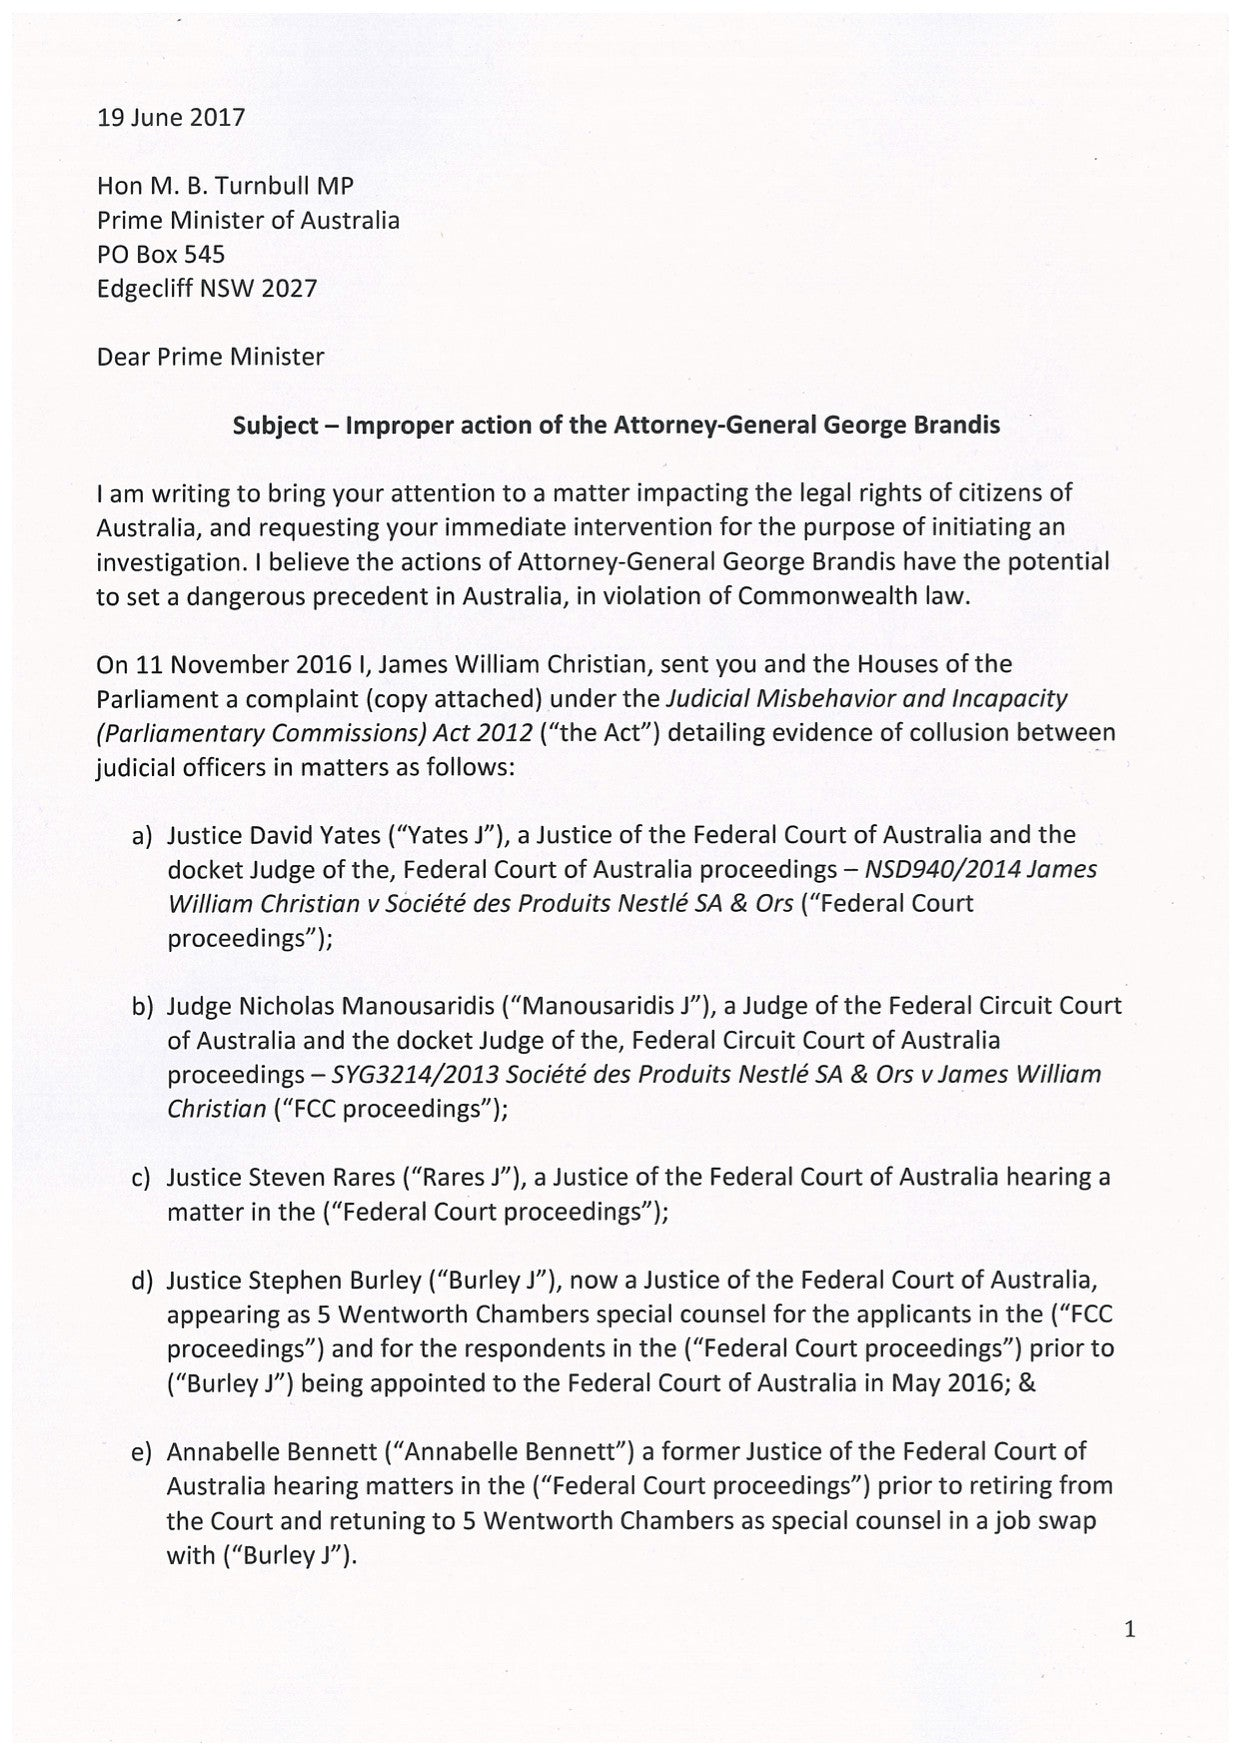 Letter to Prime Minister Malcolm Turnbull